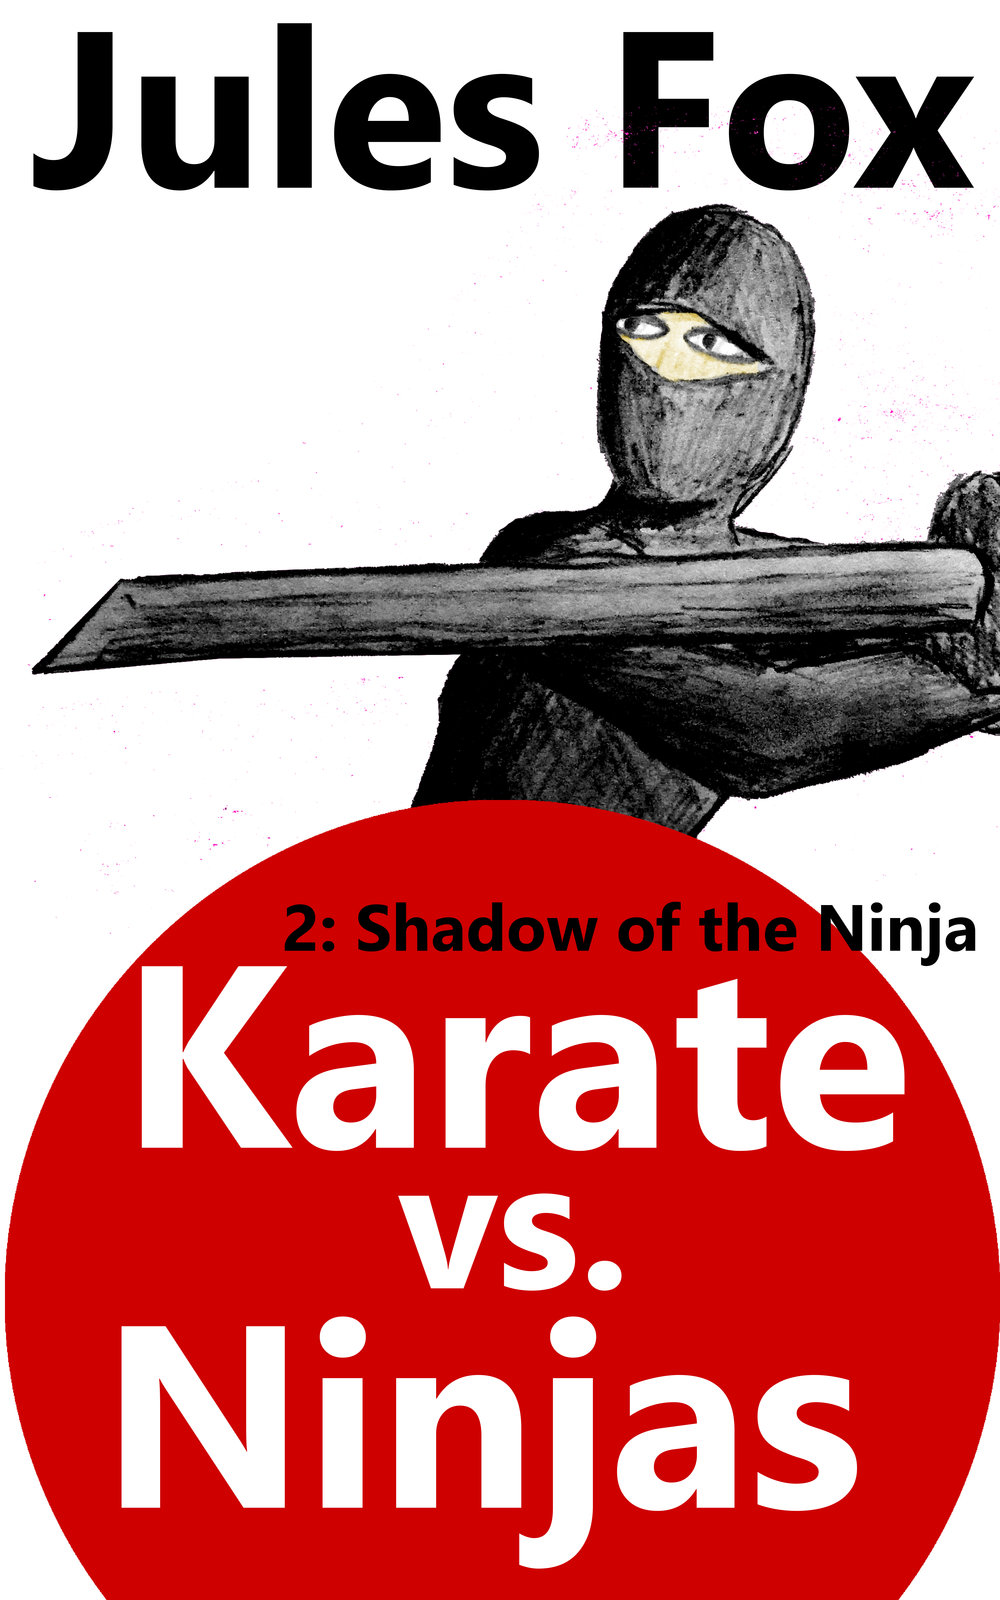 Karate Vs. Ninjas 2 - Shadow of the Ninja    Stealthy Ninja is the kidnapped baby with the blue glow, and smoke magic. When the cruel Shogun Shigi trains him to steal the Scroll of Ultimate Power, he is faced with a dilemma: all he wants to do is be an entertainer for the people, yet he can never reveal his identity.  Will he fulfill the orders he resents?  This is Stealthy Ninja's side of the Origins story.  An action comedy for children ages 8-12.